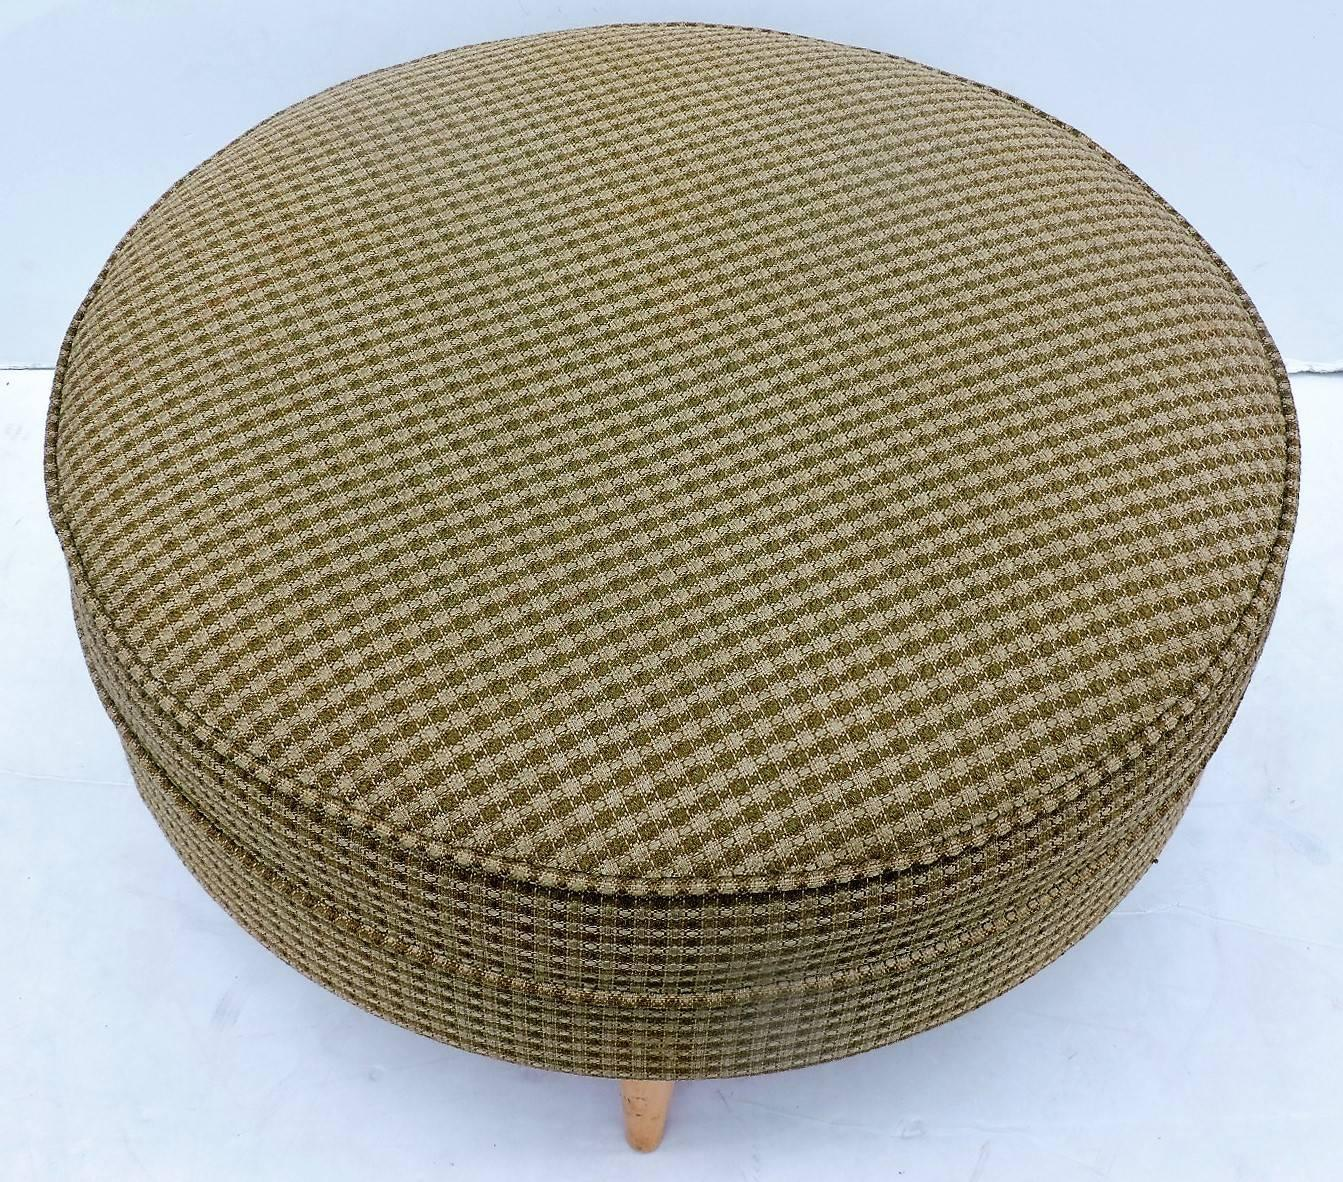 Large Round Ottoman : Mid-20th Century Big Round Ottoman Pouf For Sale at 1stdibs